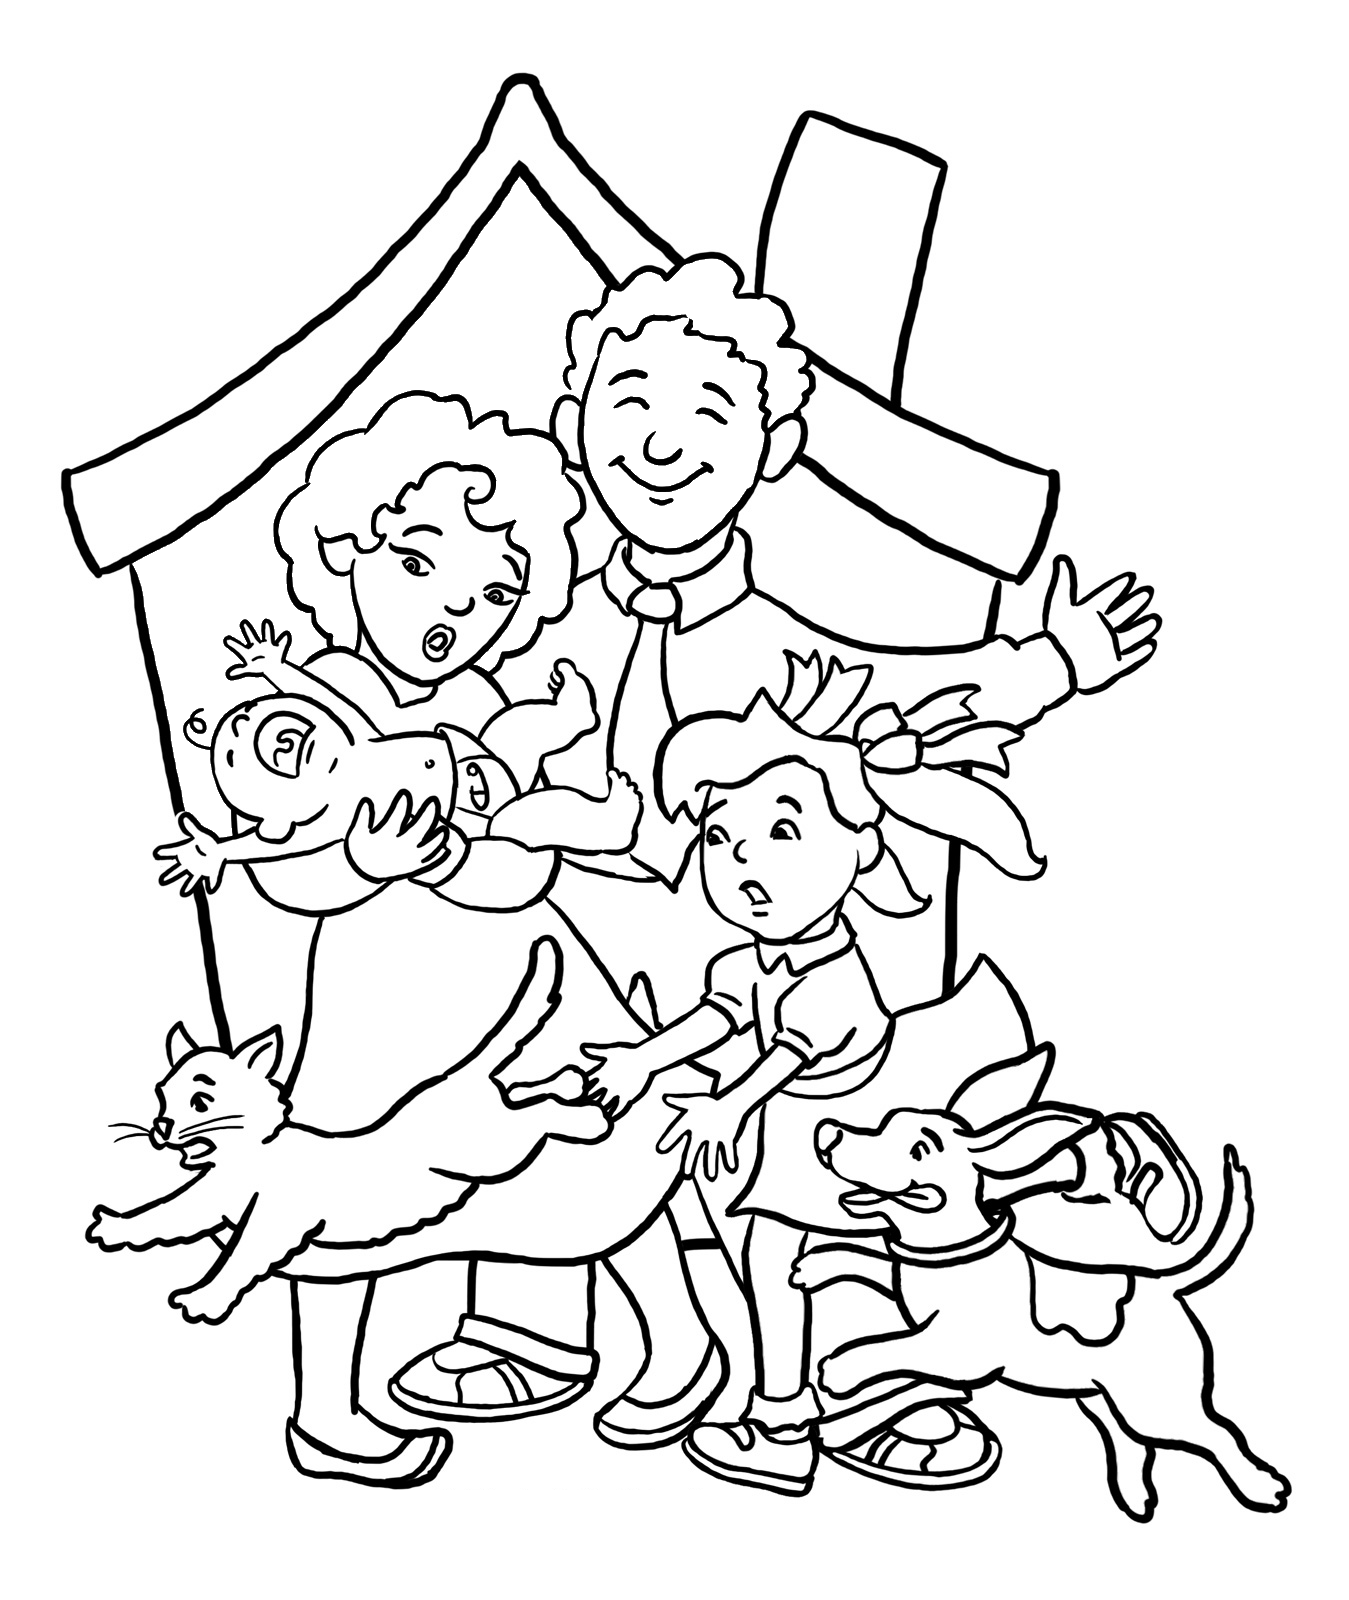 homes multicultural coloring pages - photo#1